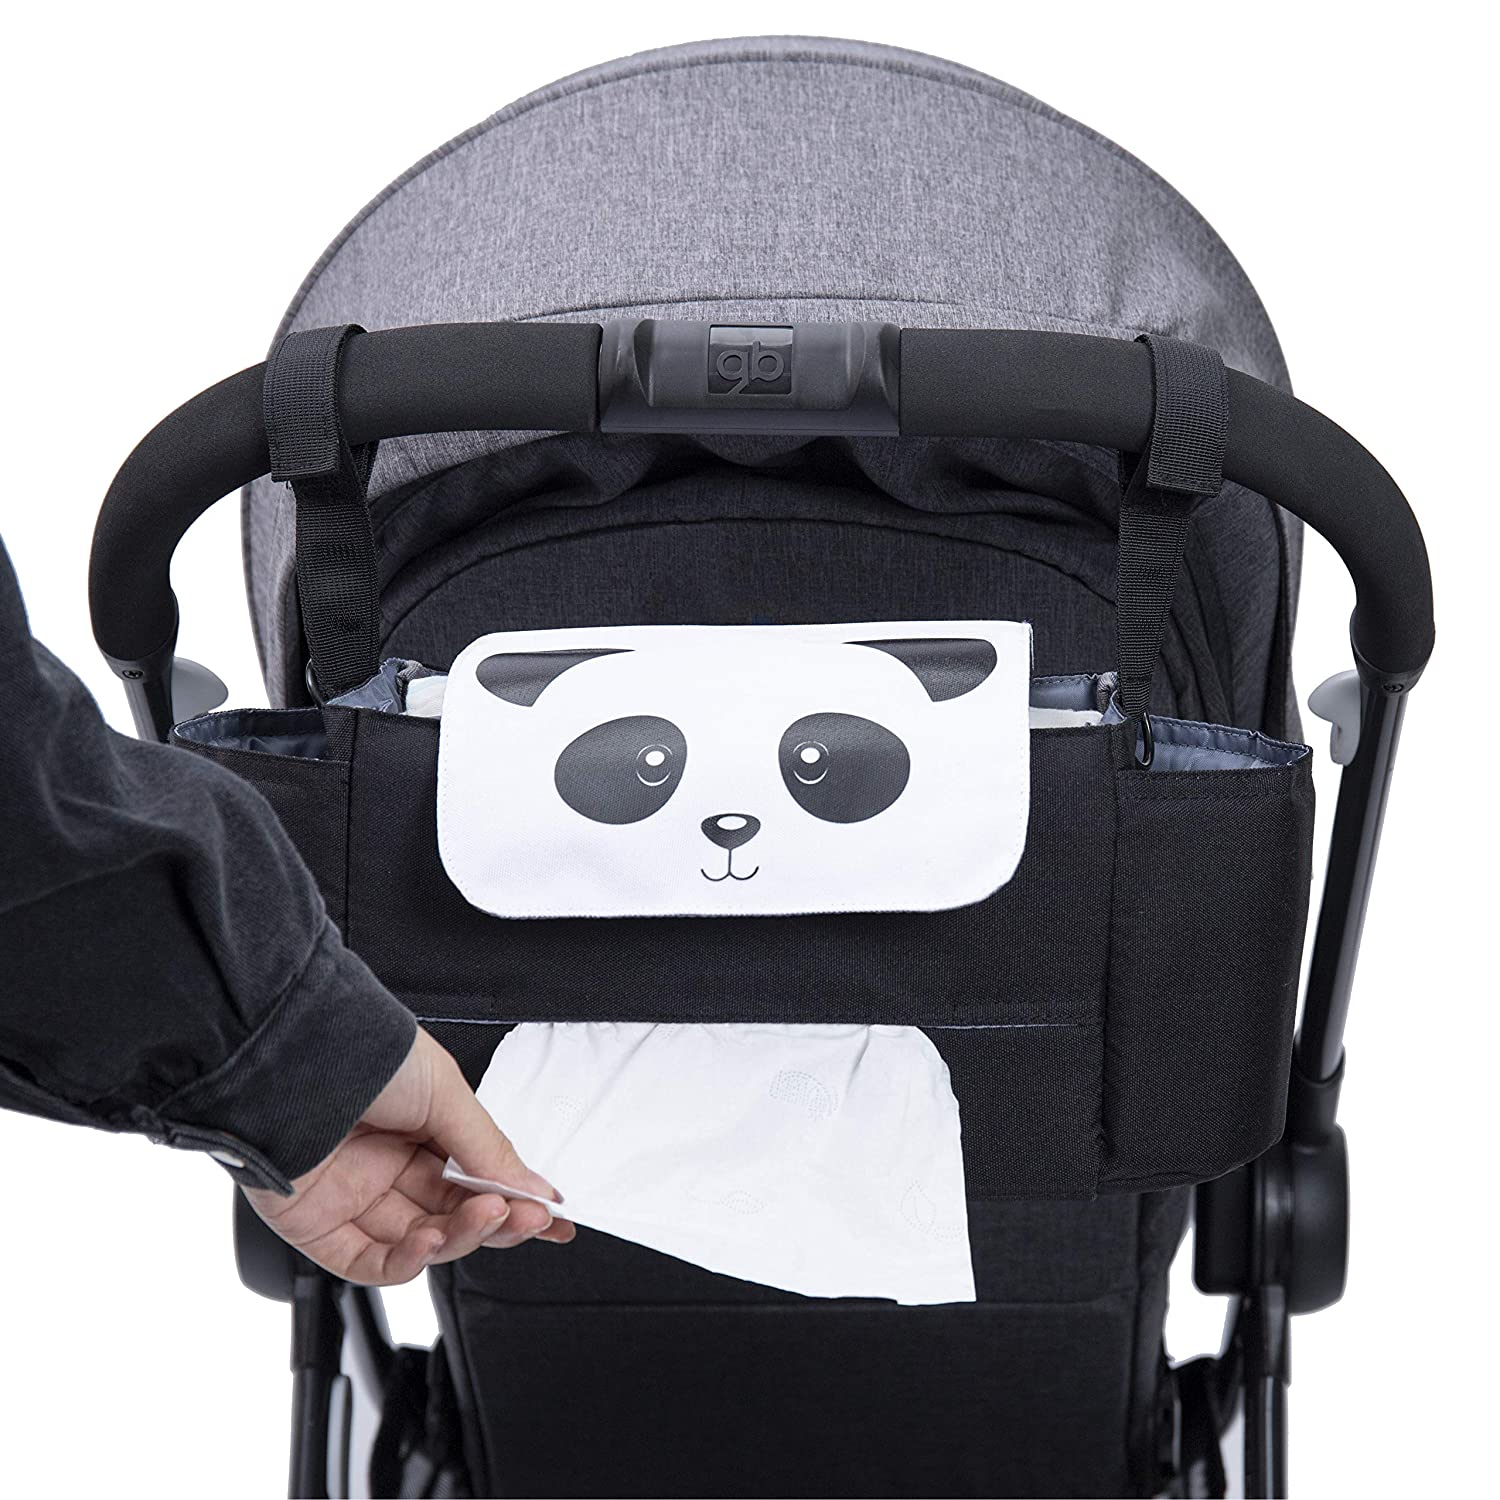 Orzbow Baby Stroller Organizer with Cup Holders and Diaper Bag,Stroller Accessories Organizer Bag,Baby Stroller Hanging Bag, Large Storage Space Baby Travel Bag (Panda)